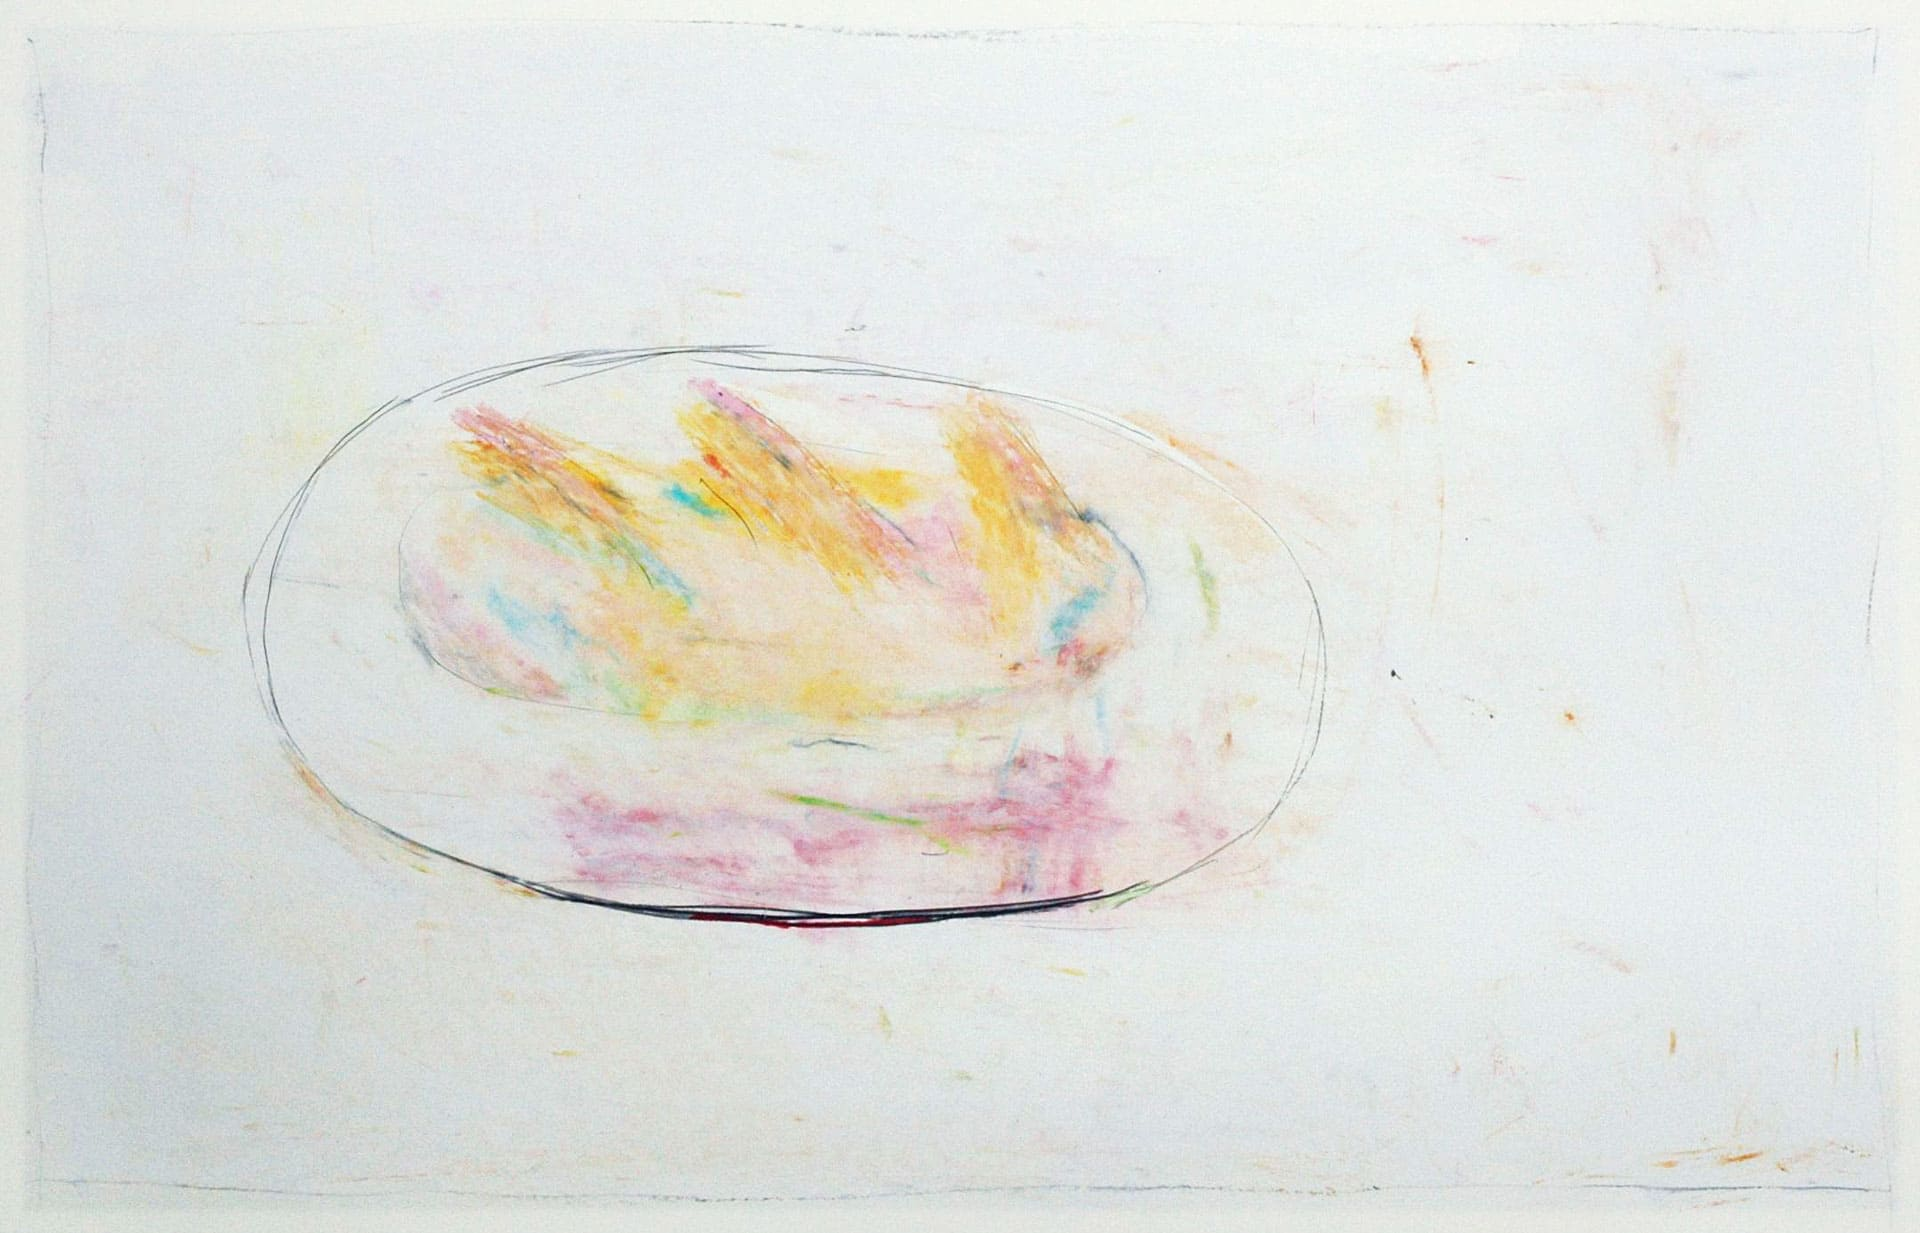 Winter Brot   The Becoming of Bread   Angelika Beuler   2014